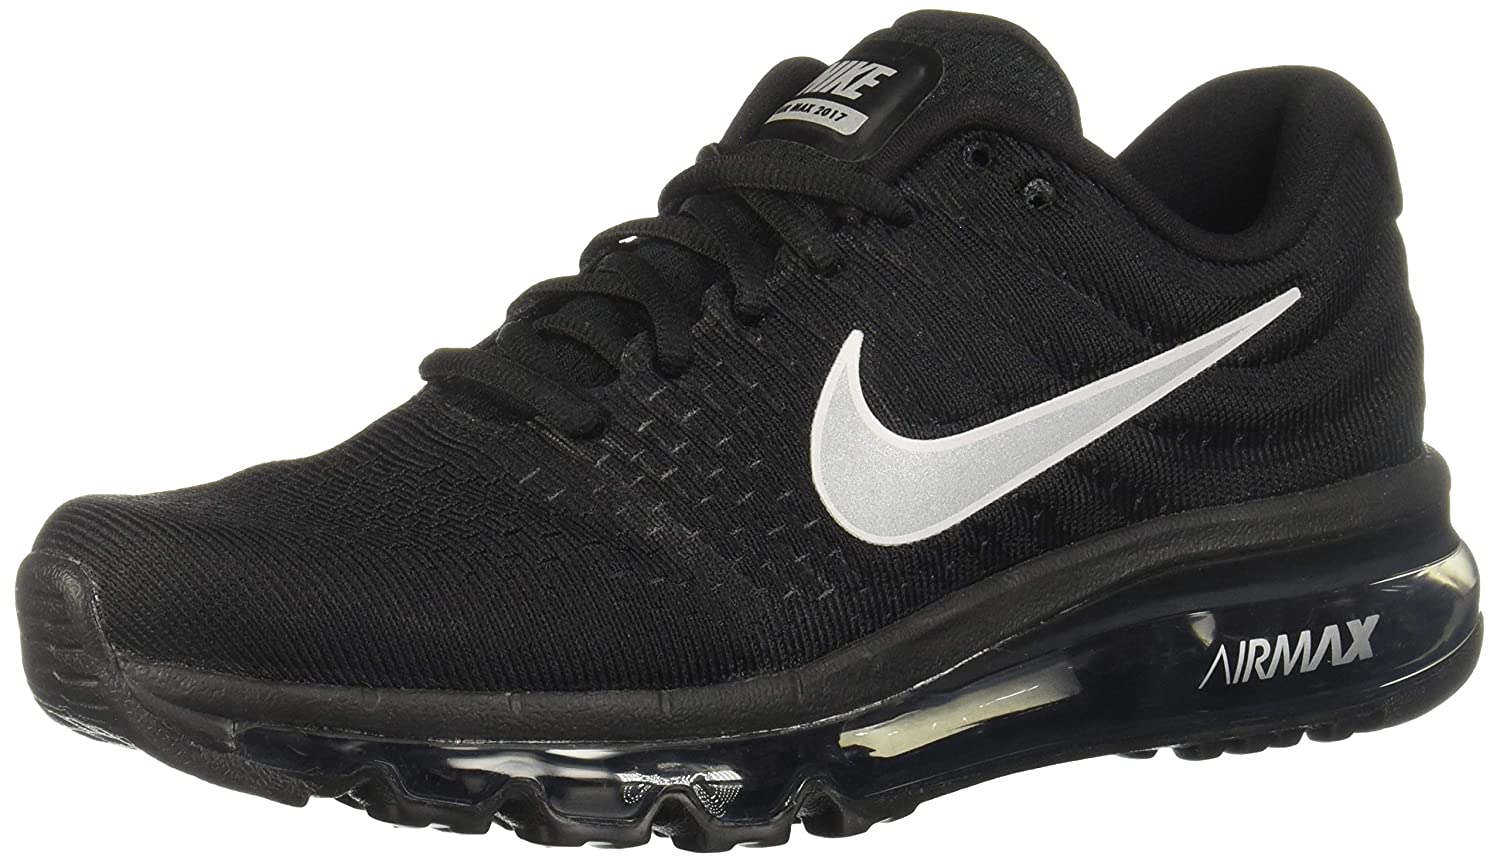 cf487000ed Amazon.com | Nike Womens Air Max 2017 Running Shoes Black/White/Anthracite  849560-001 Size 10 | Road Running